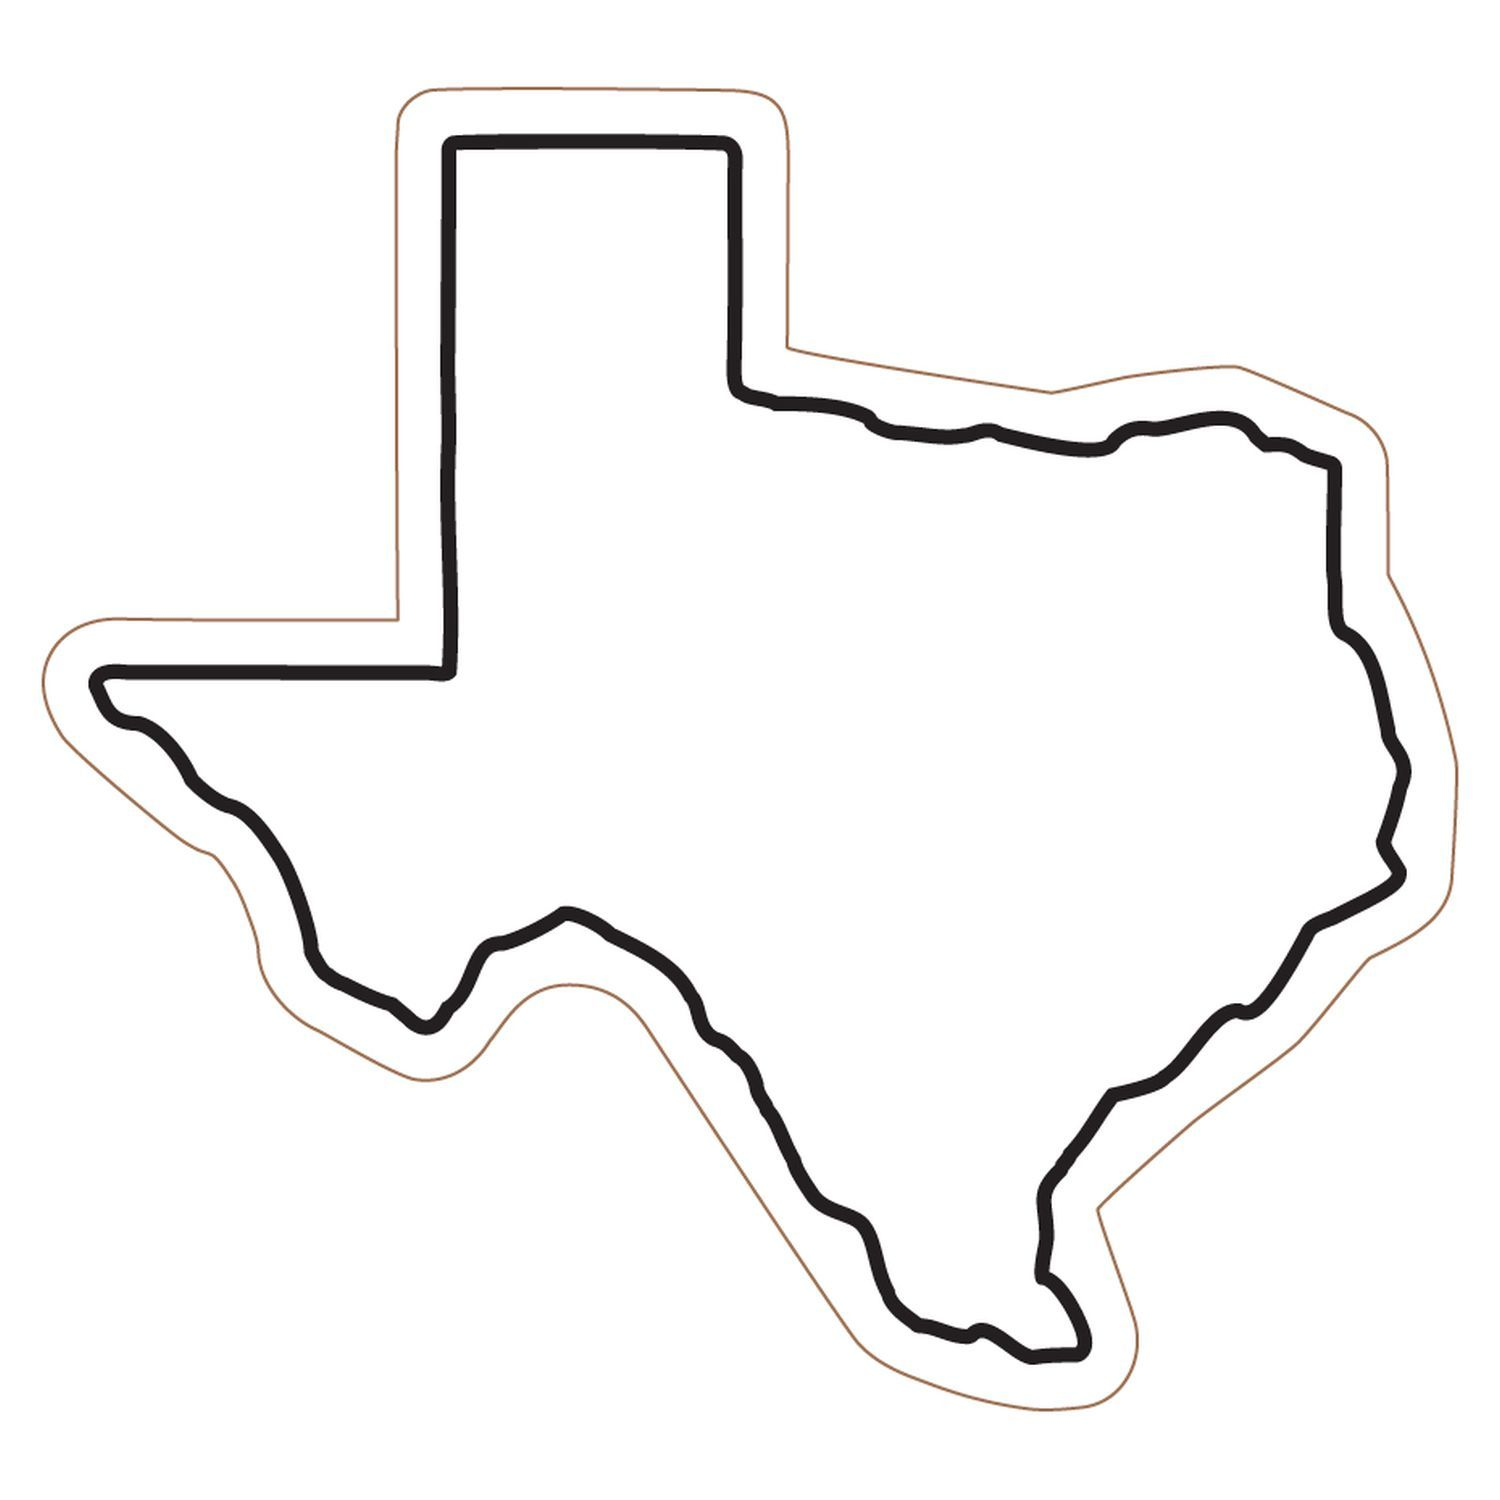 State of texas outline clip art